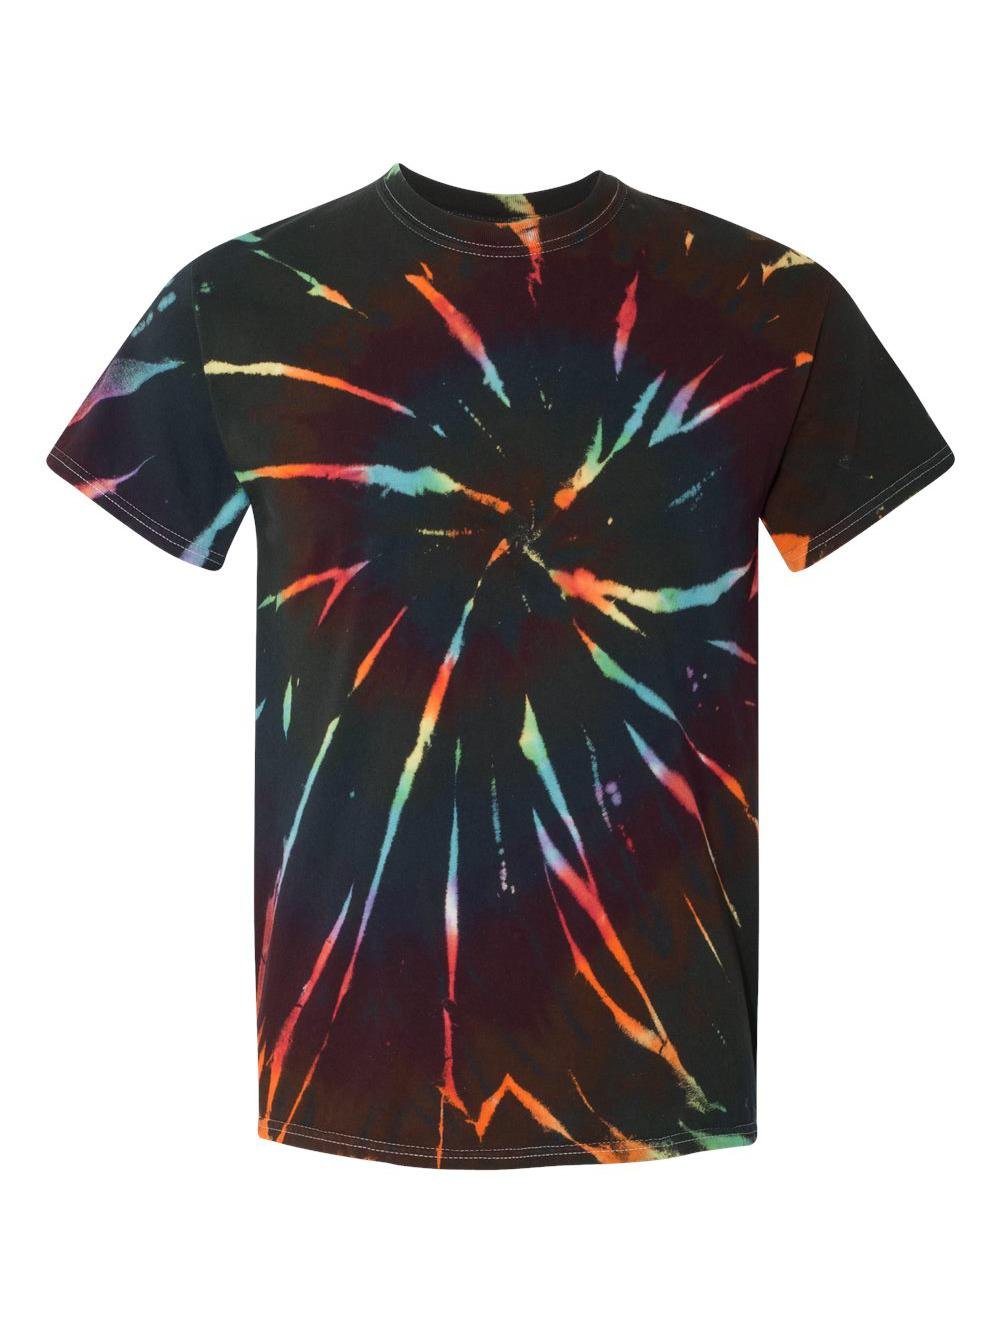 Dyenomite-Multi-Color-Spiral-Short-Sleeve-T-Shirt-200MS thumbnail 7